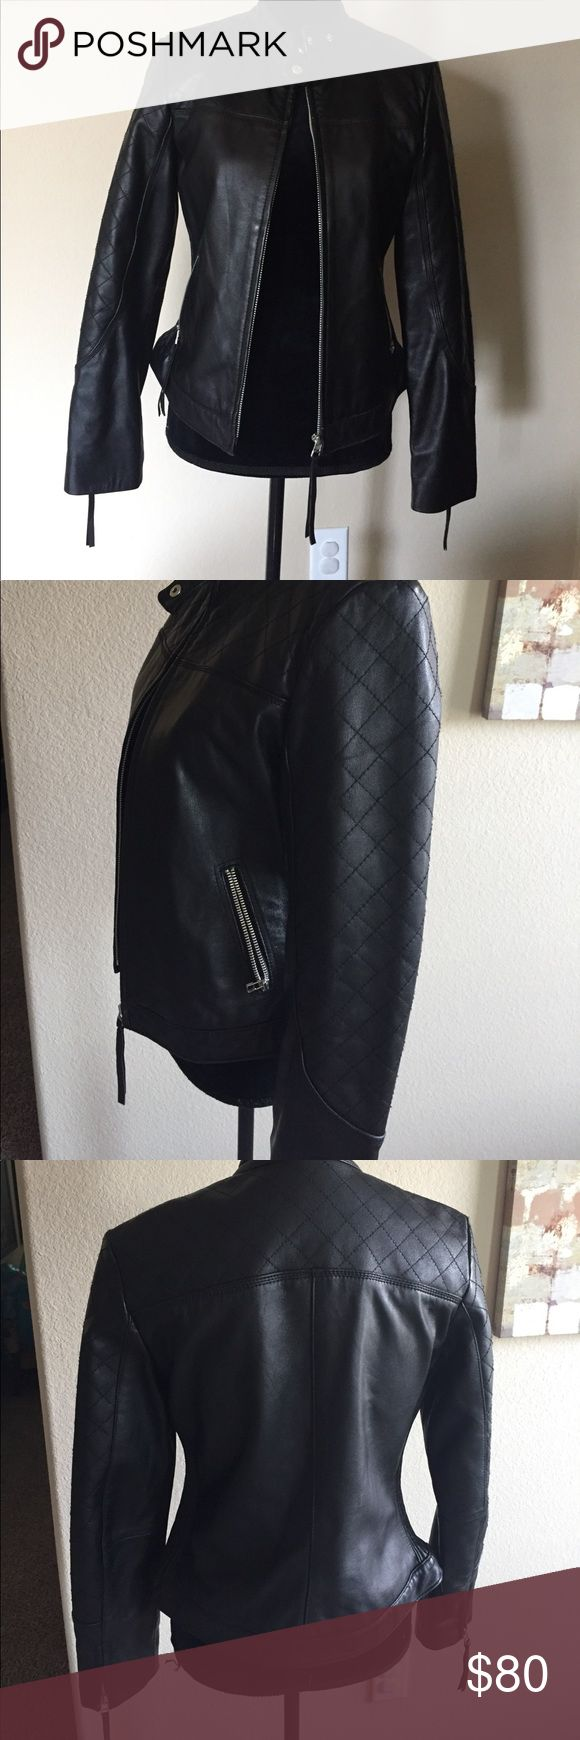 MODA International Victoria Secret Leather Jacket 100% Genuine leather jacket for sale! Silver hardware with detail on pockets and sleeves. In great condition. Moda International Jackets & Coats